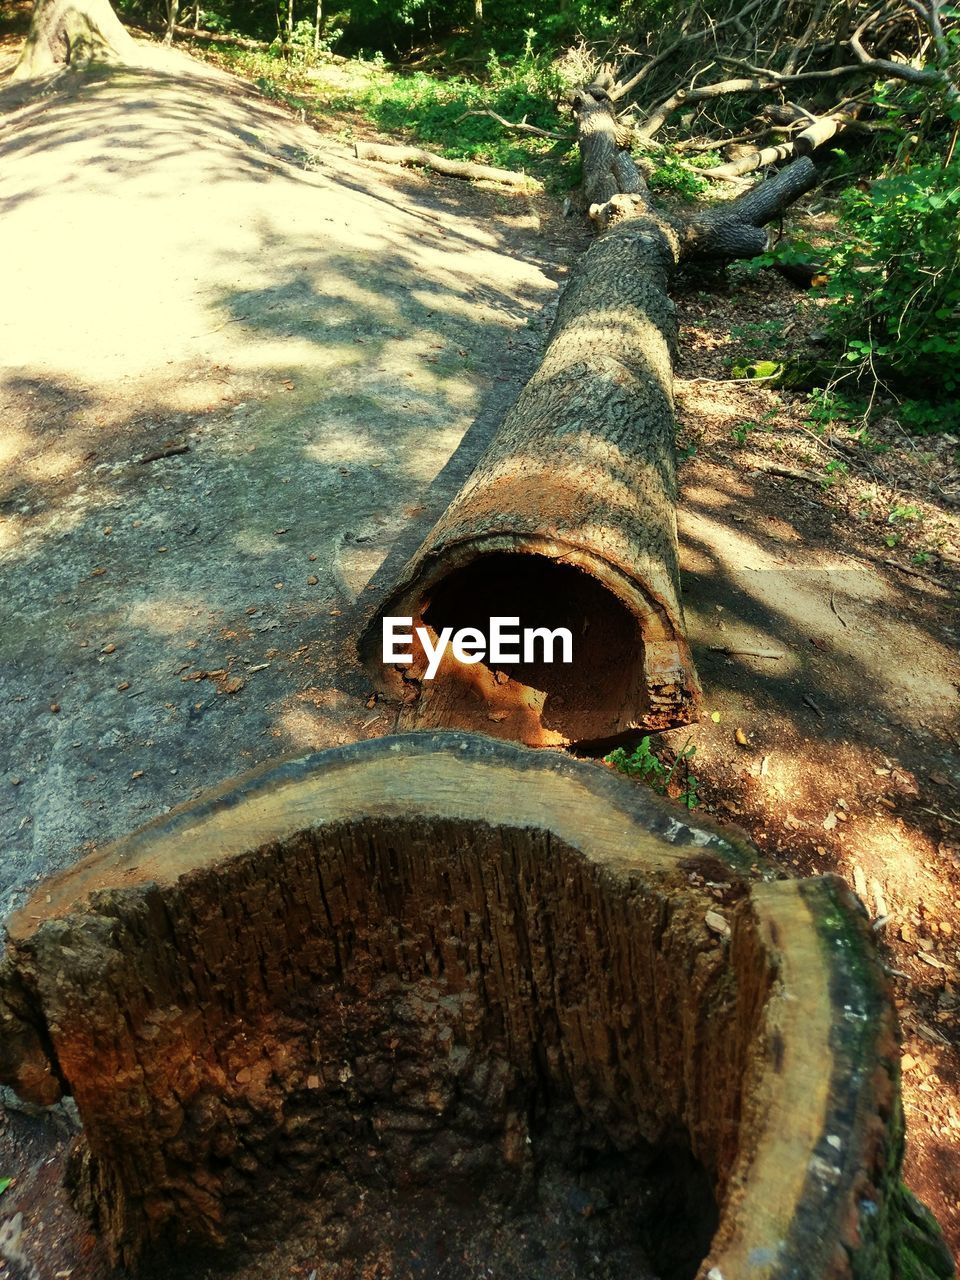 water, day, no people, high angle view, outdoors, sewer, sewage, close-up, nature, tree